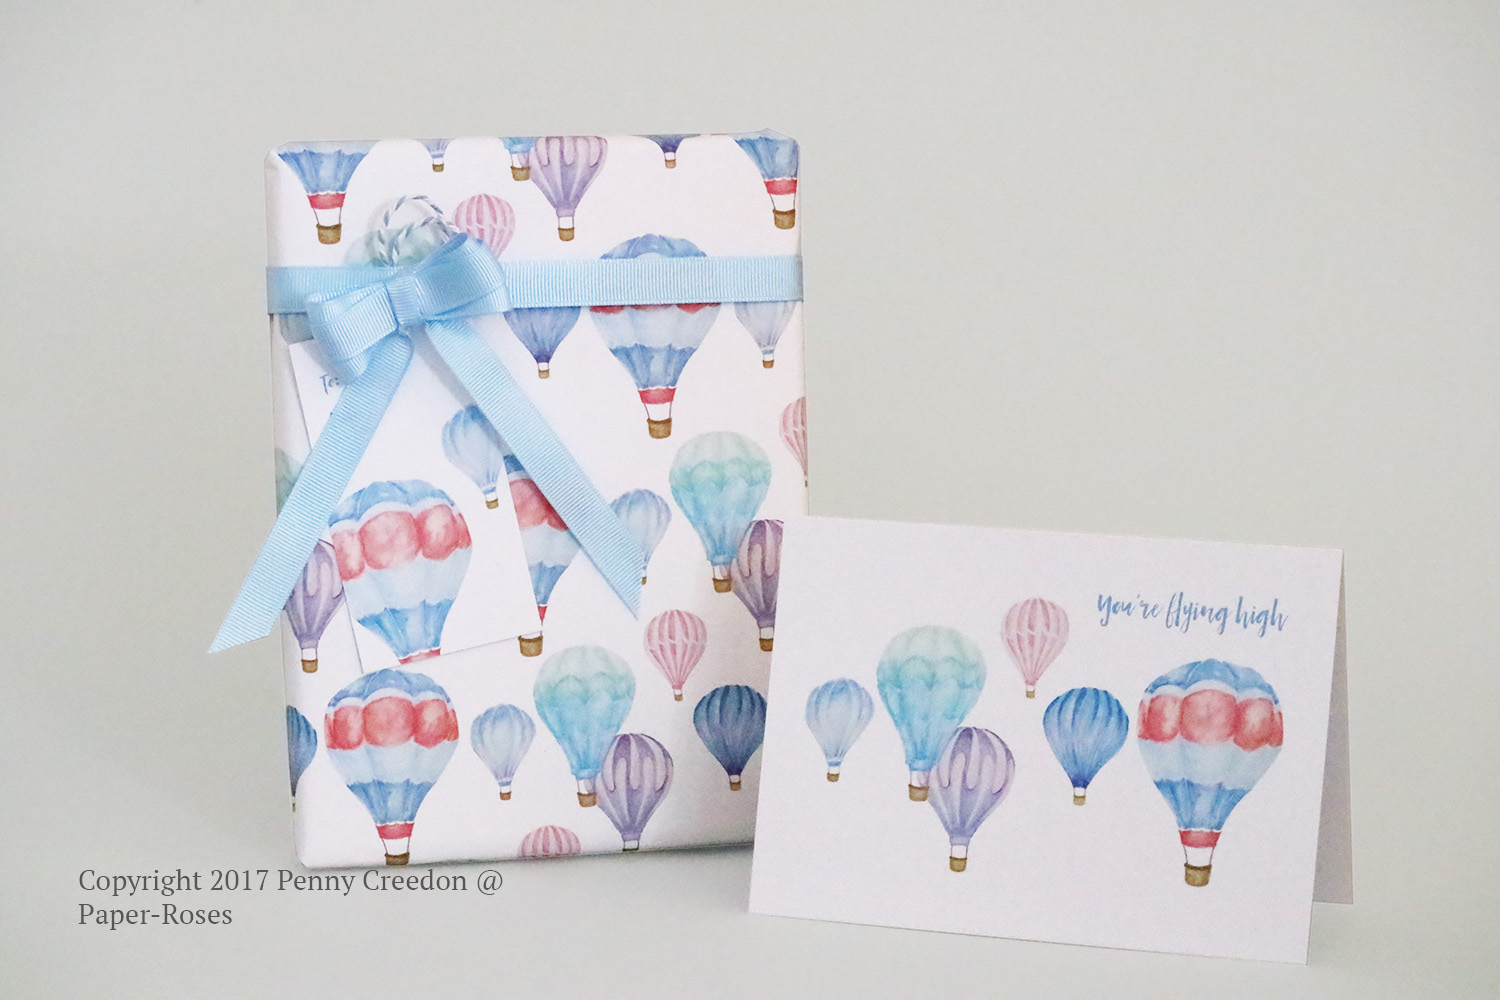 Paper-Roses | You're flying high collection